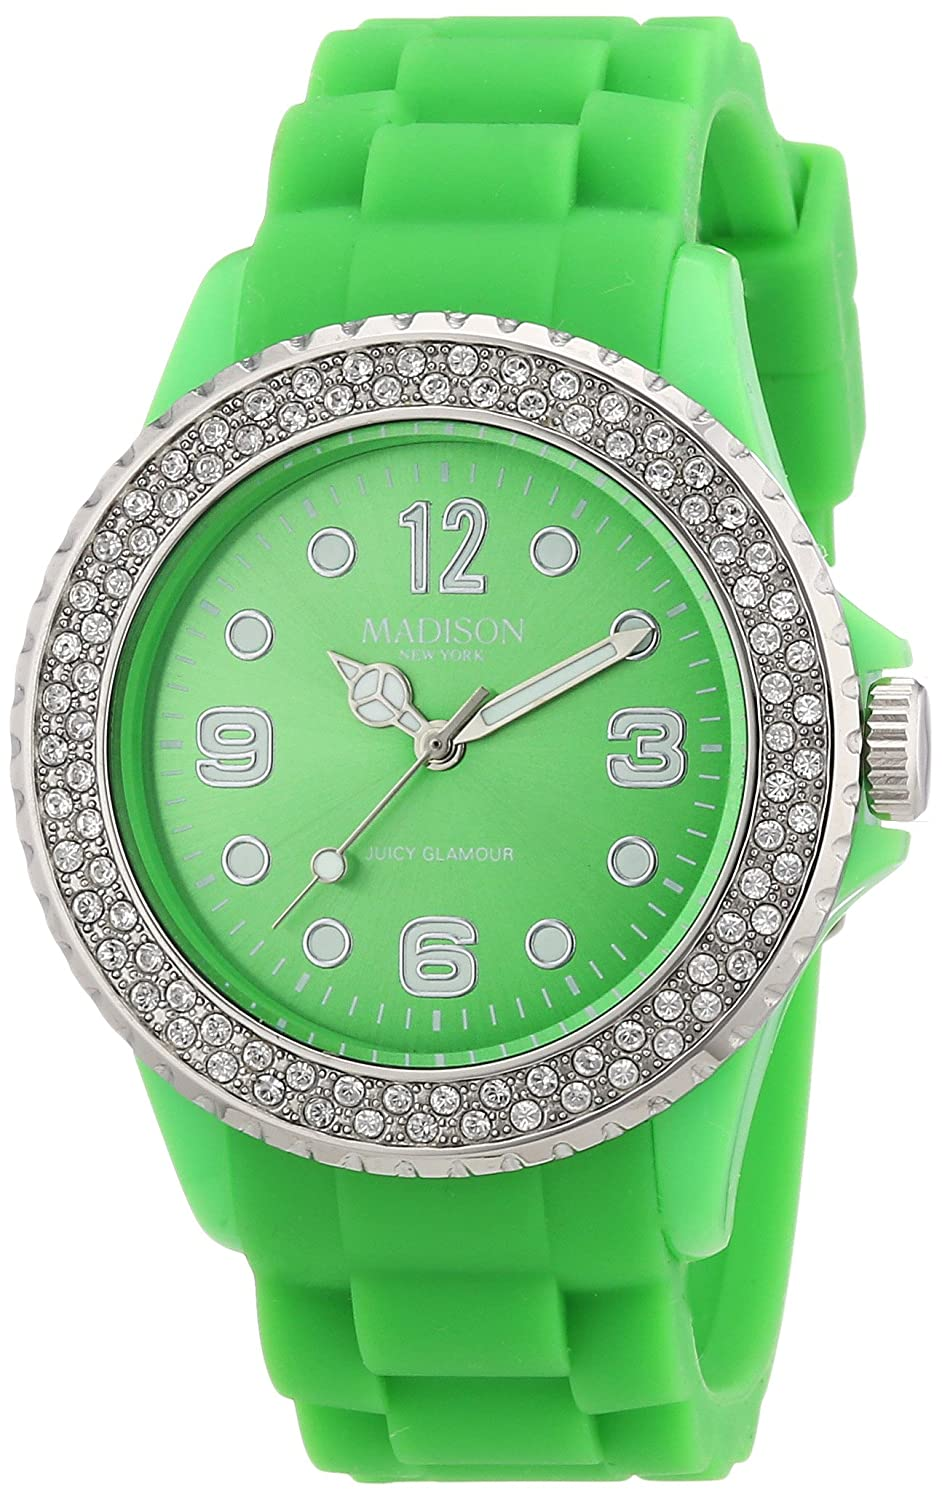 Madison New York U4101Q5 - Reloj analógico de Cuarzo Unisex con Correa de Silicona, Color Verde